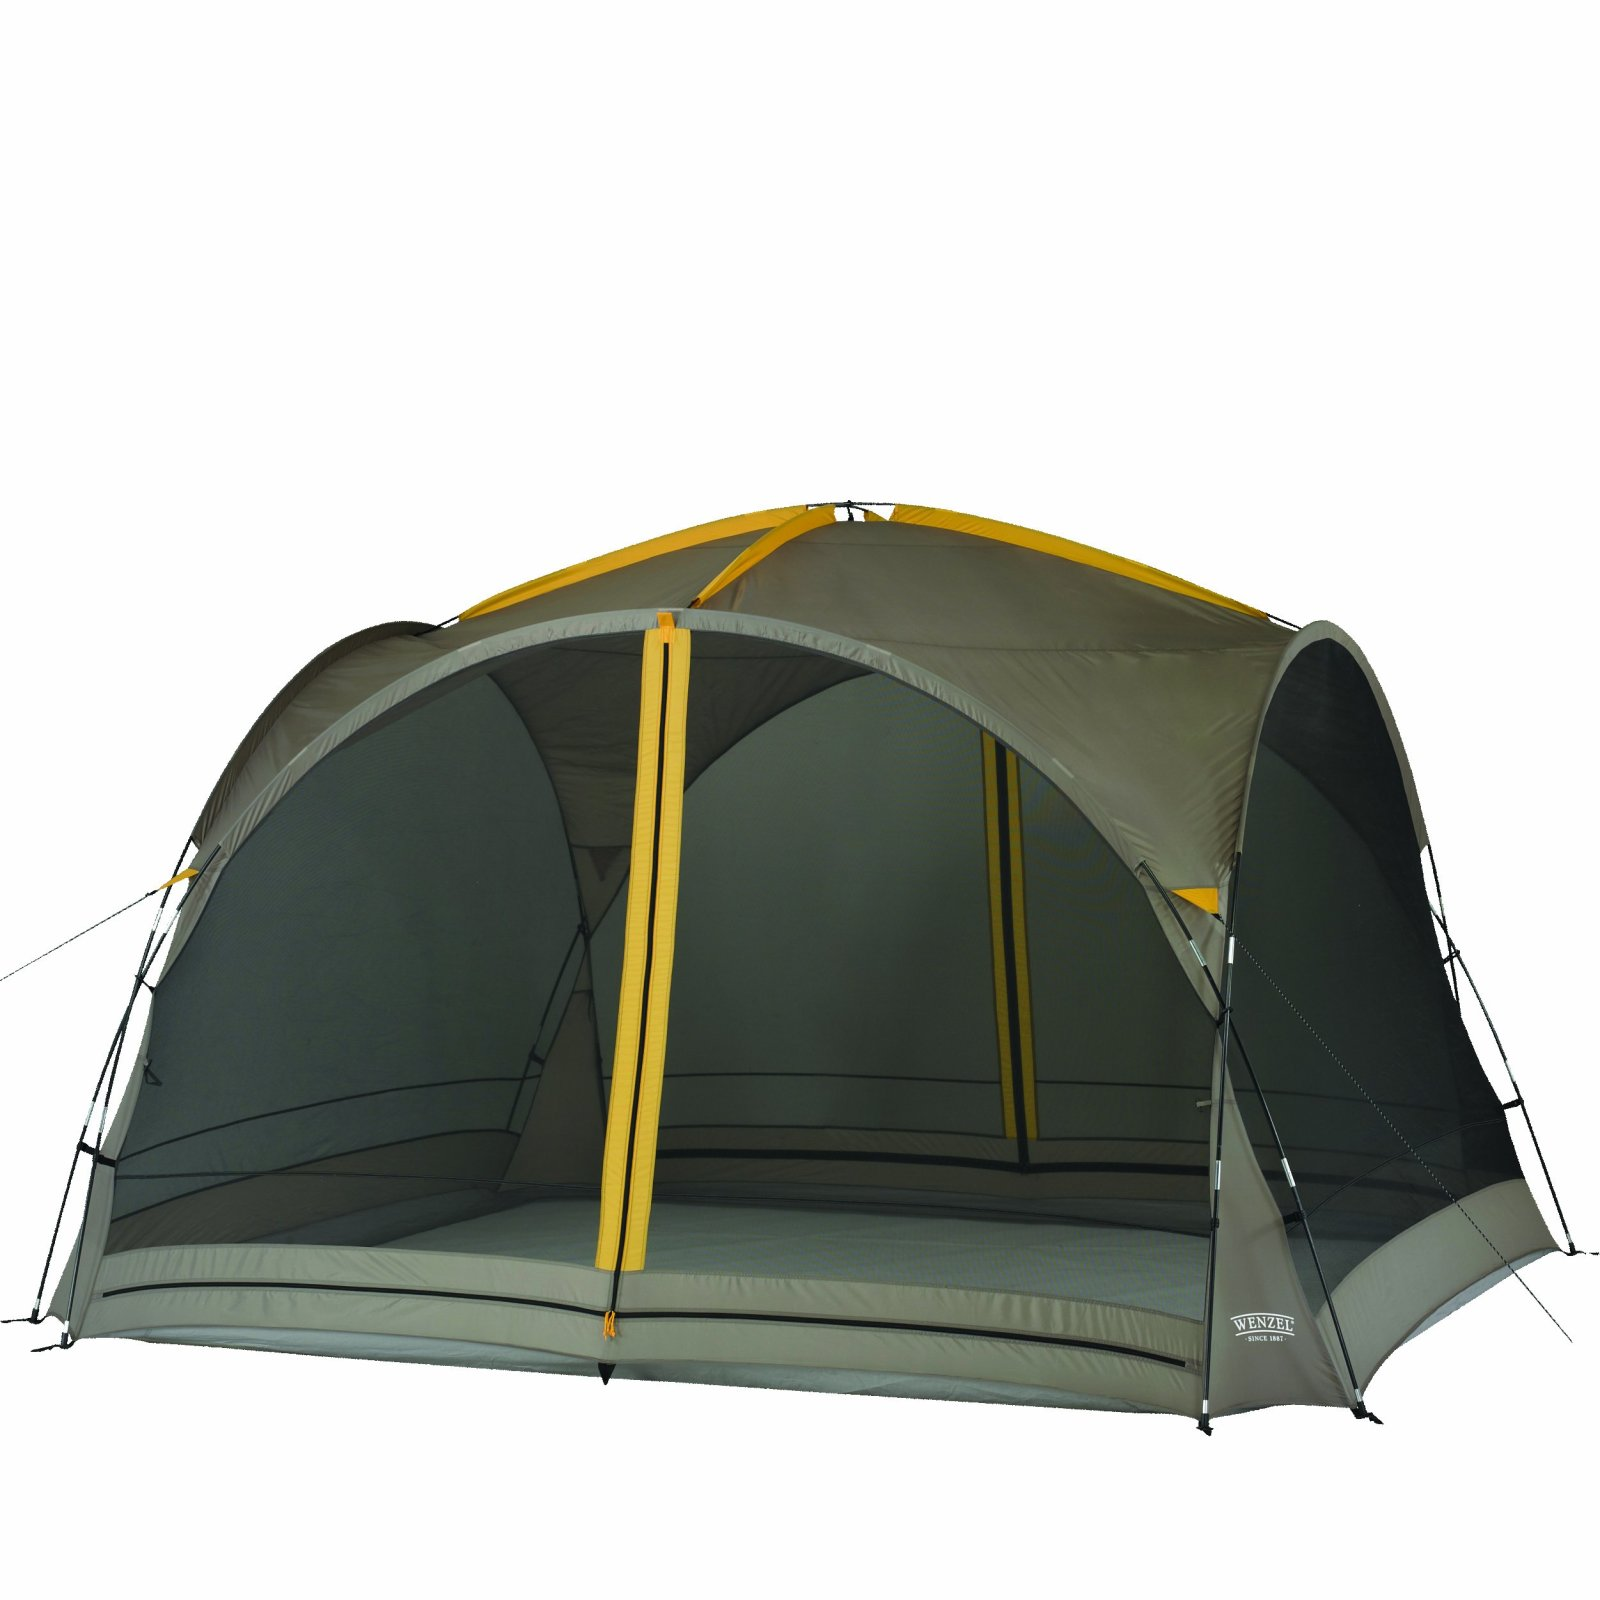 Screen House Outdoor Tent Camping Shelter Cover Canopy Housing New